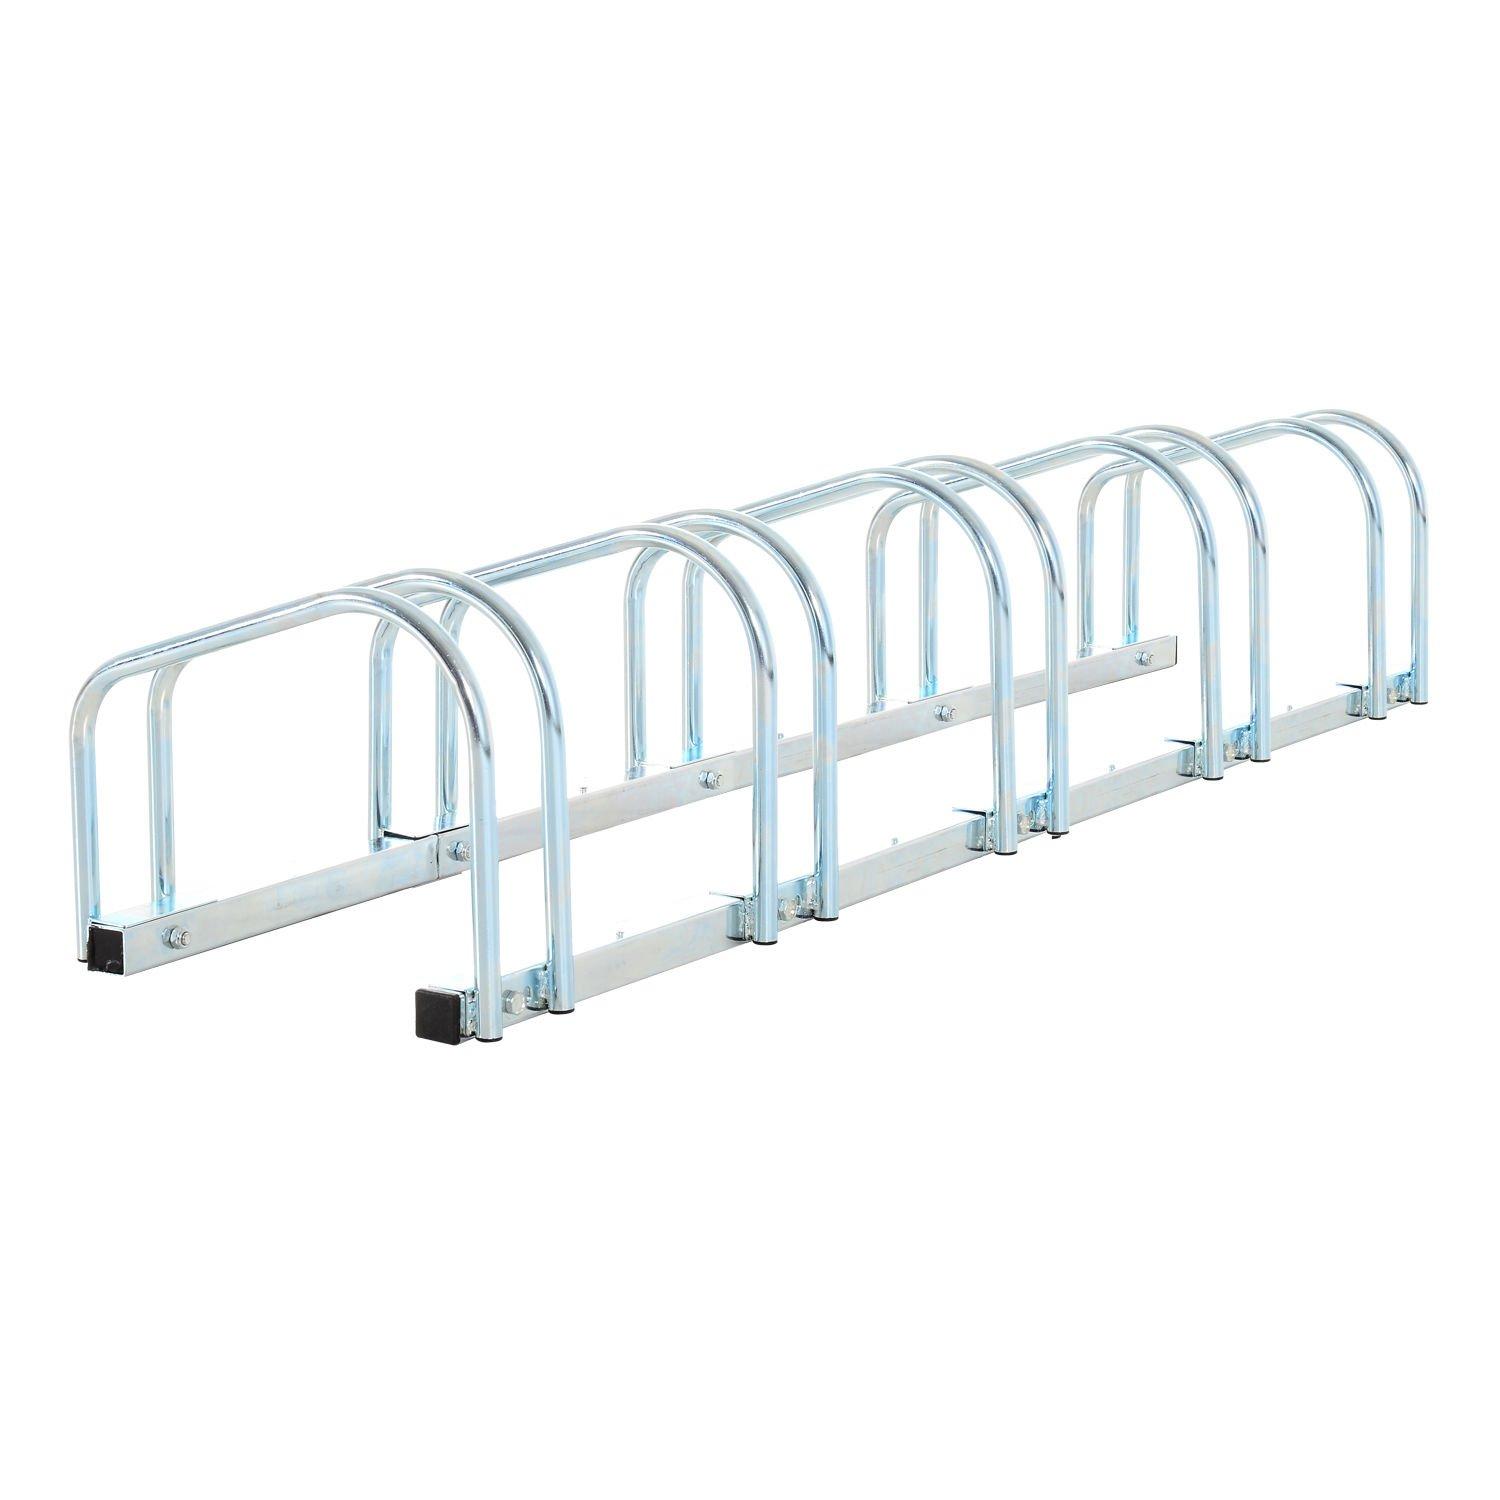 HOMCOM Bike Stand Parking Rack Floor or Wall Mount Bicycle Cycle Storage Locking Stand Sold by MHSTAR